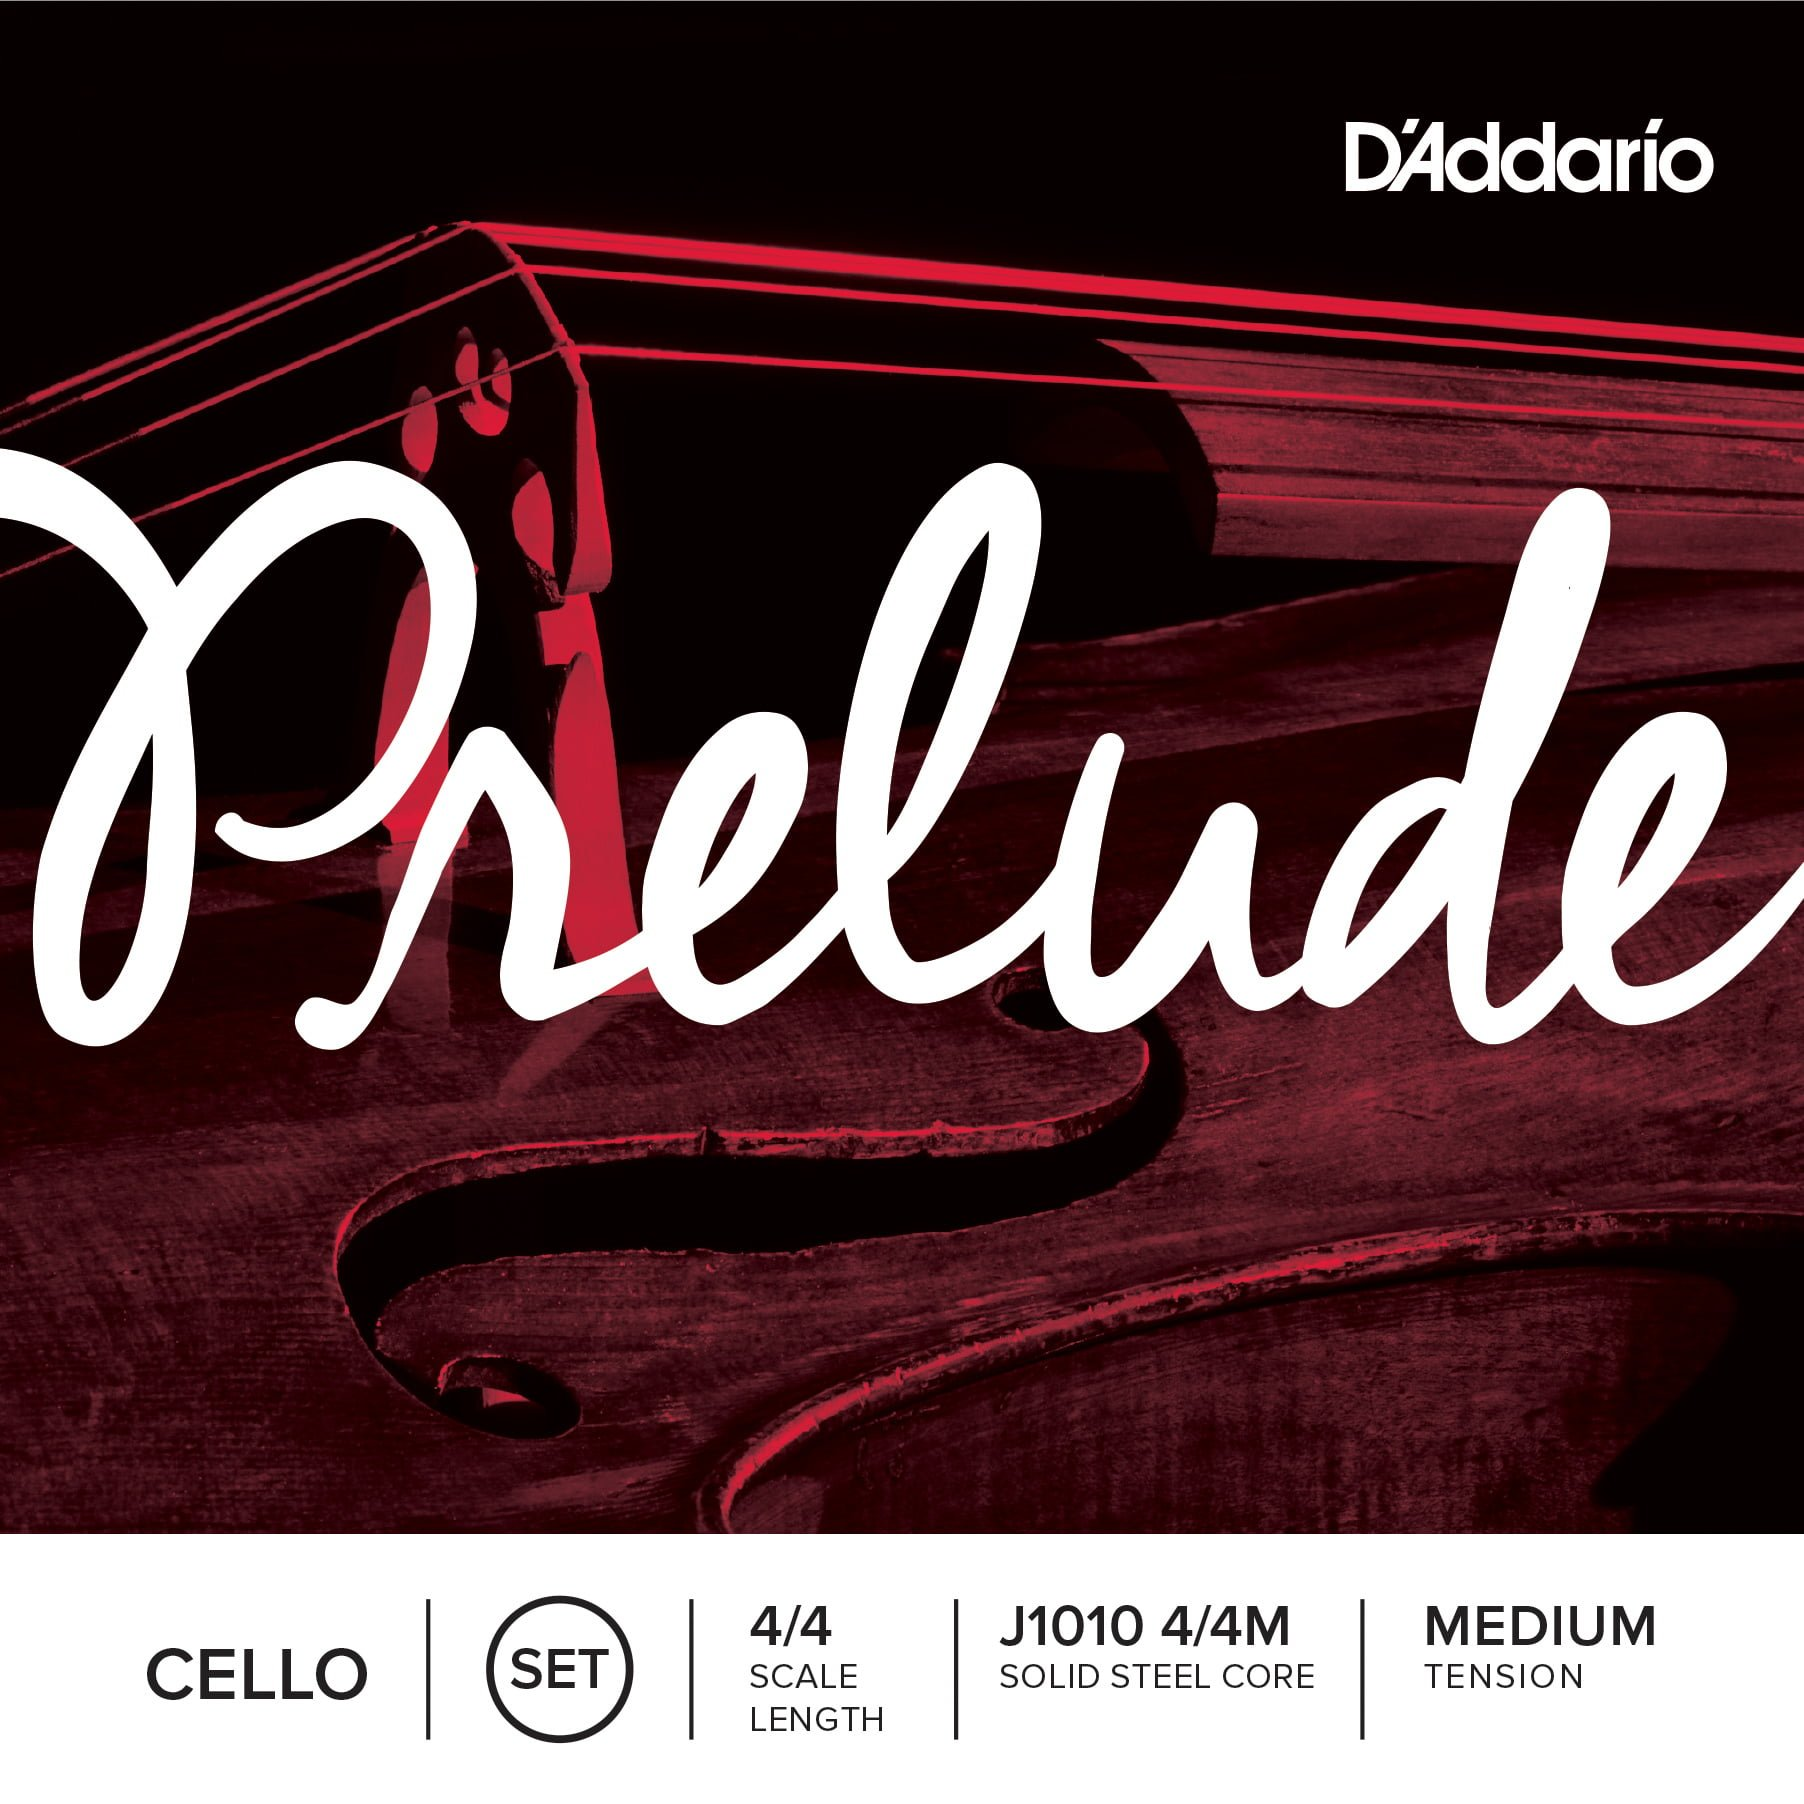 Prelude Cello Set of Strings 4/4 Medium